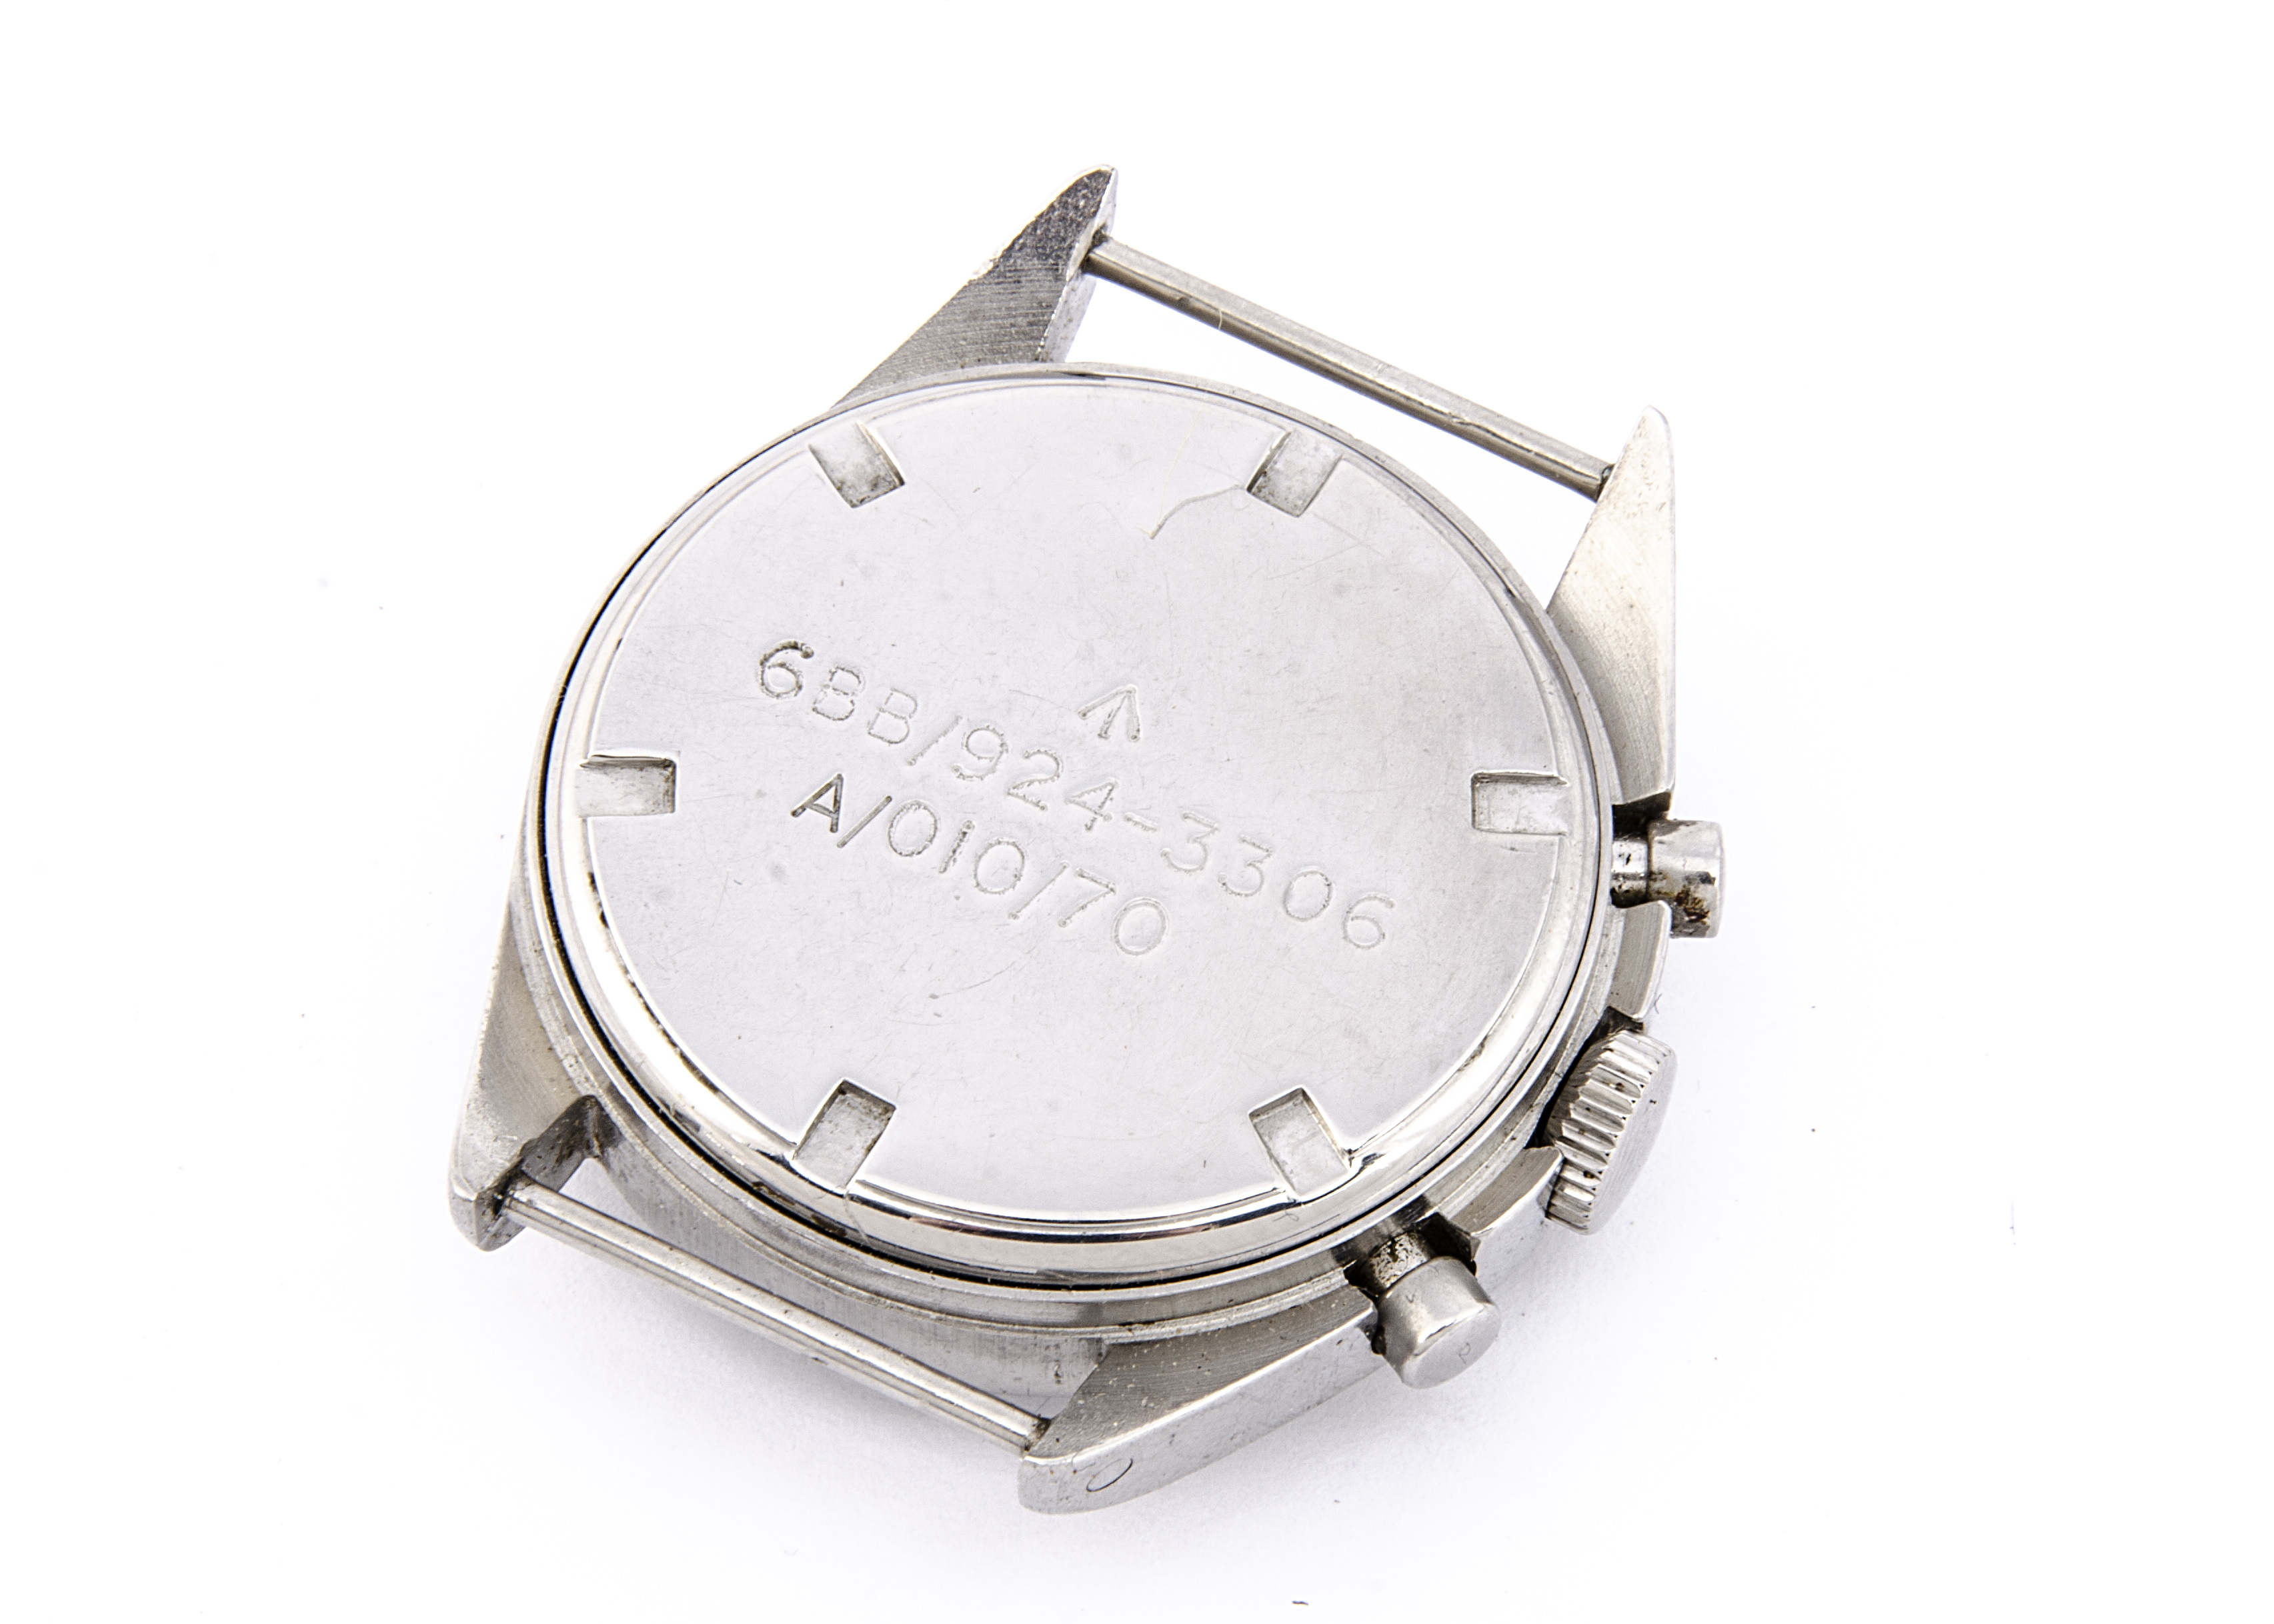 A c1970s Hamilton two button chronograph Royal Air Force stainless steel wristwatch, 38mm case, - Image 4 of 4